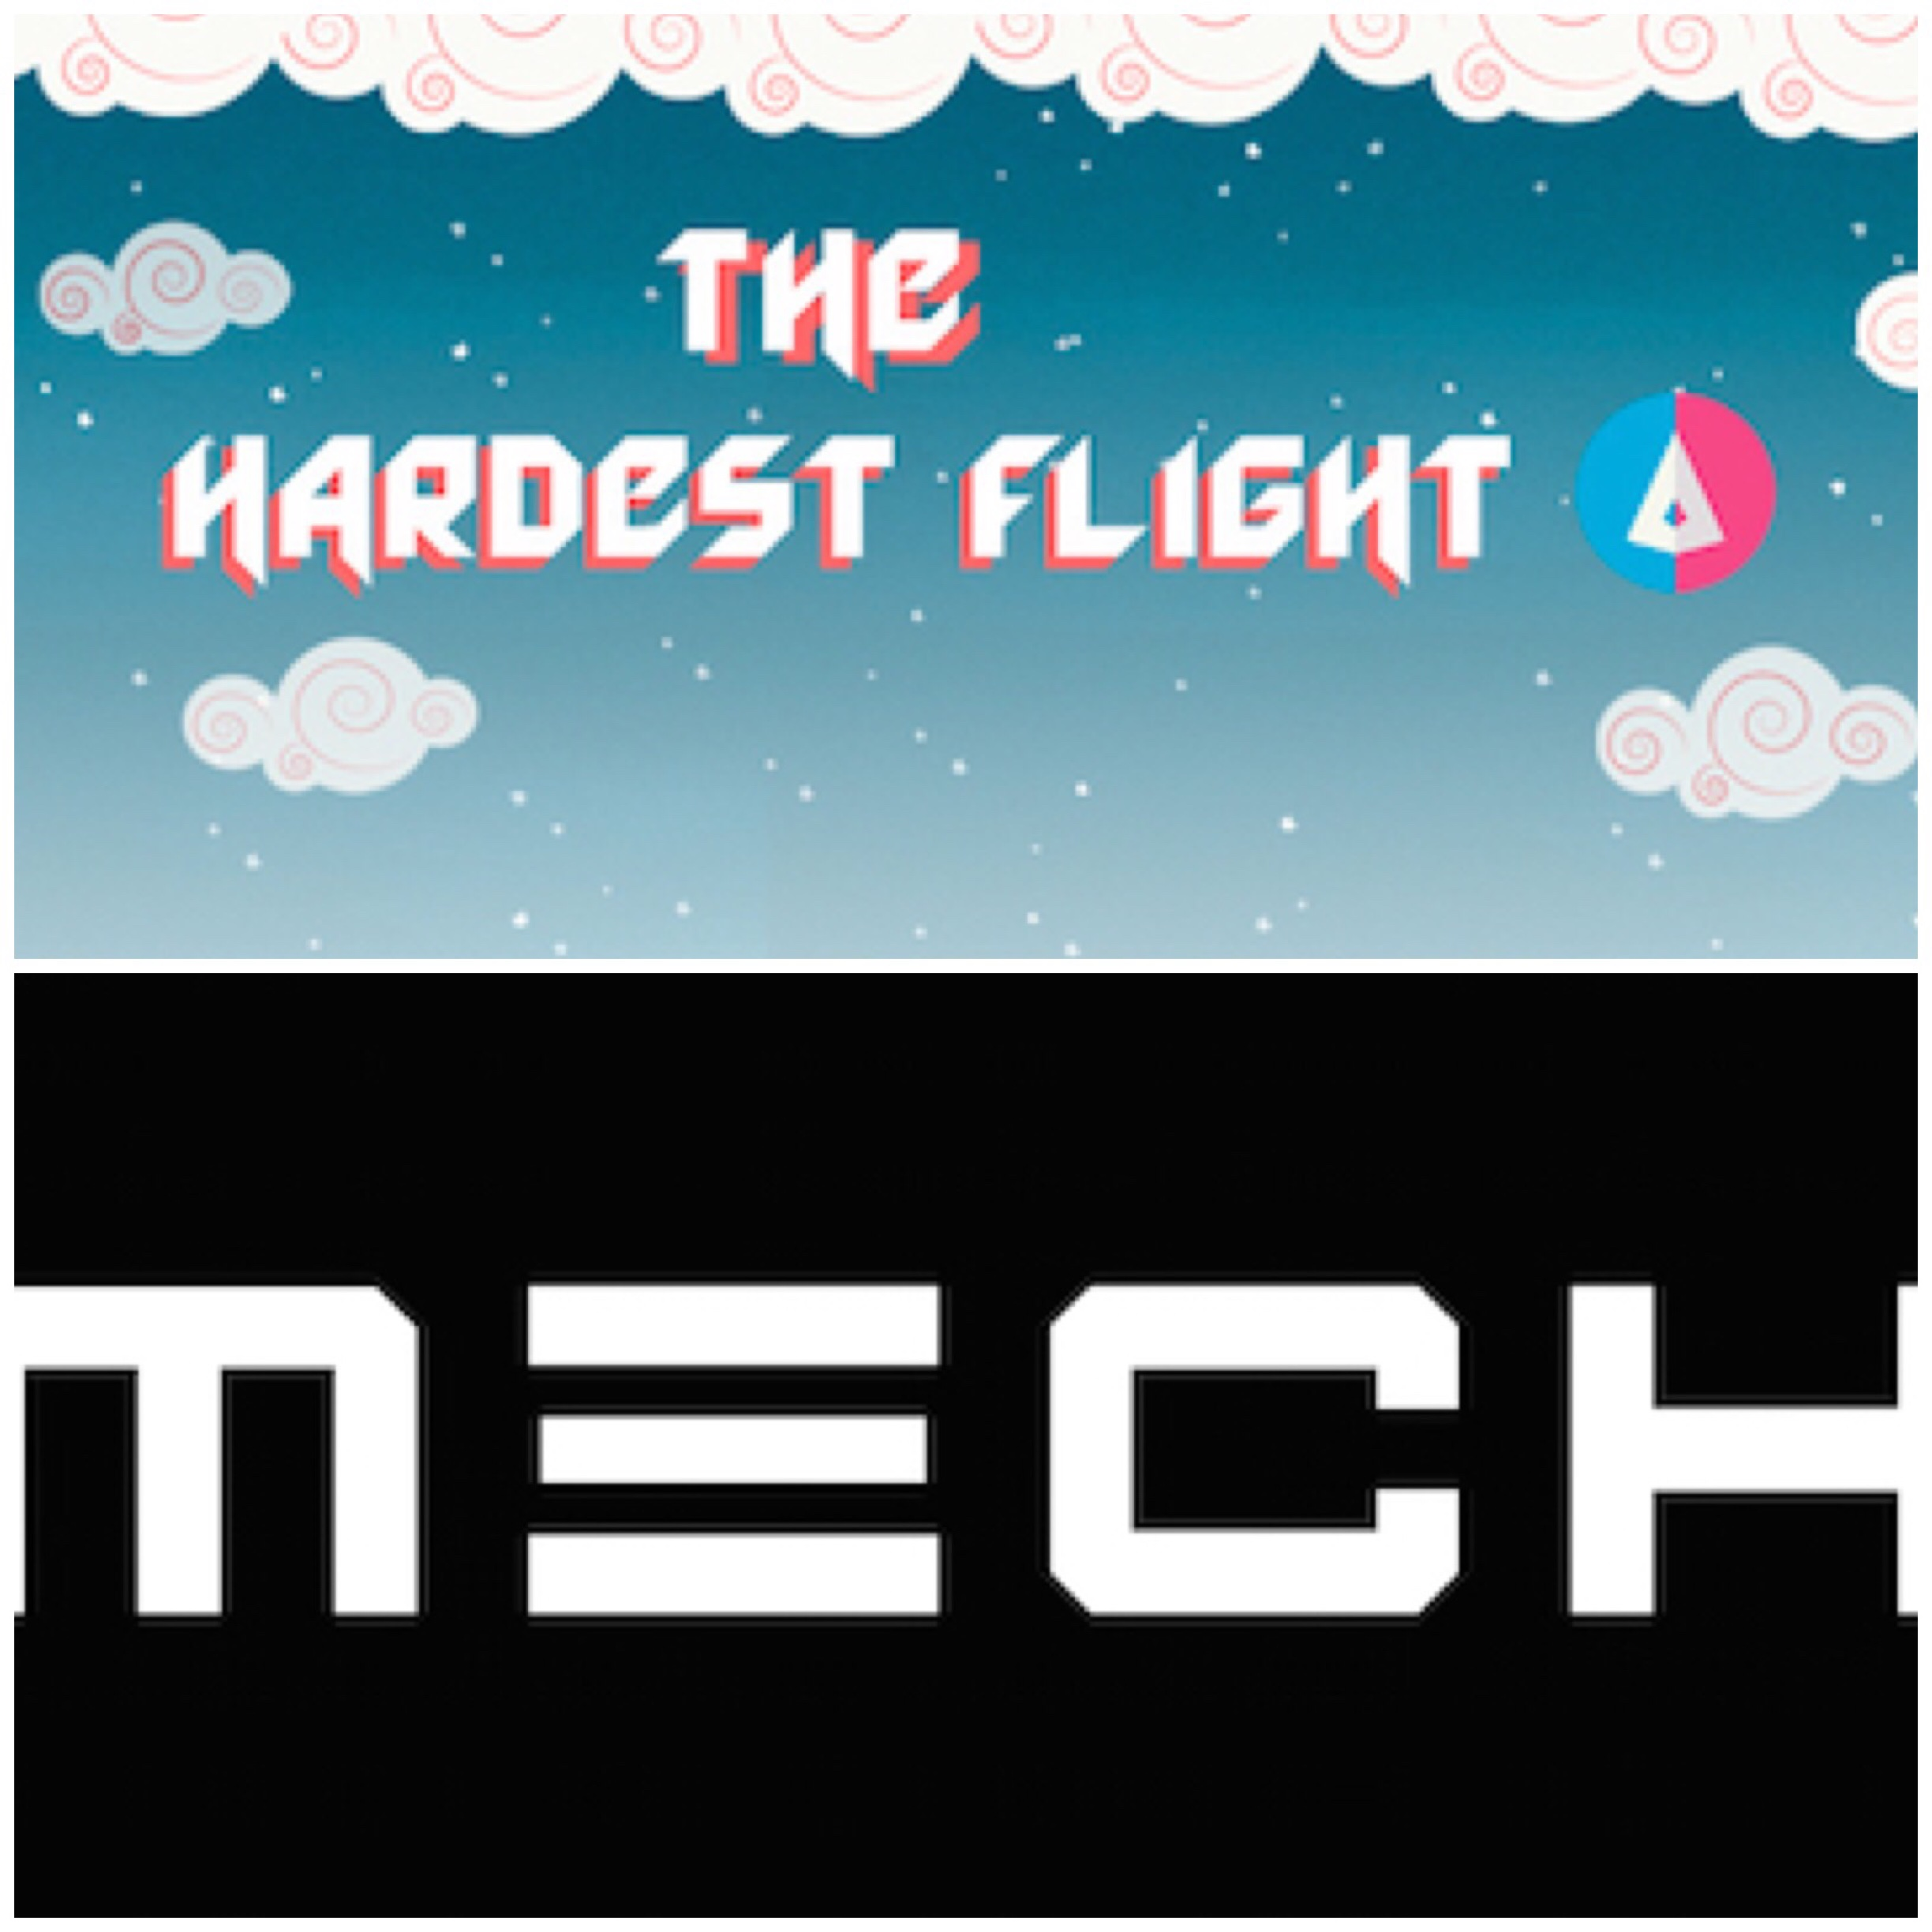 The Hardest Flight and Mech